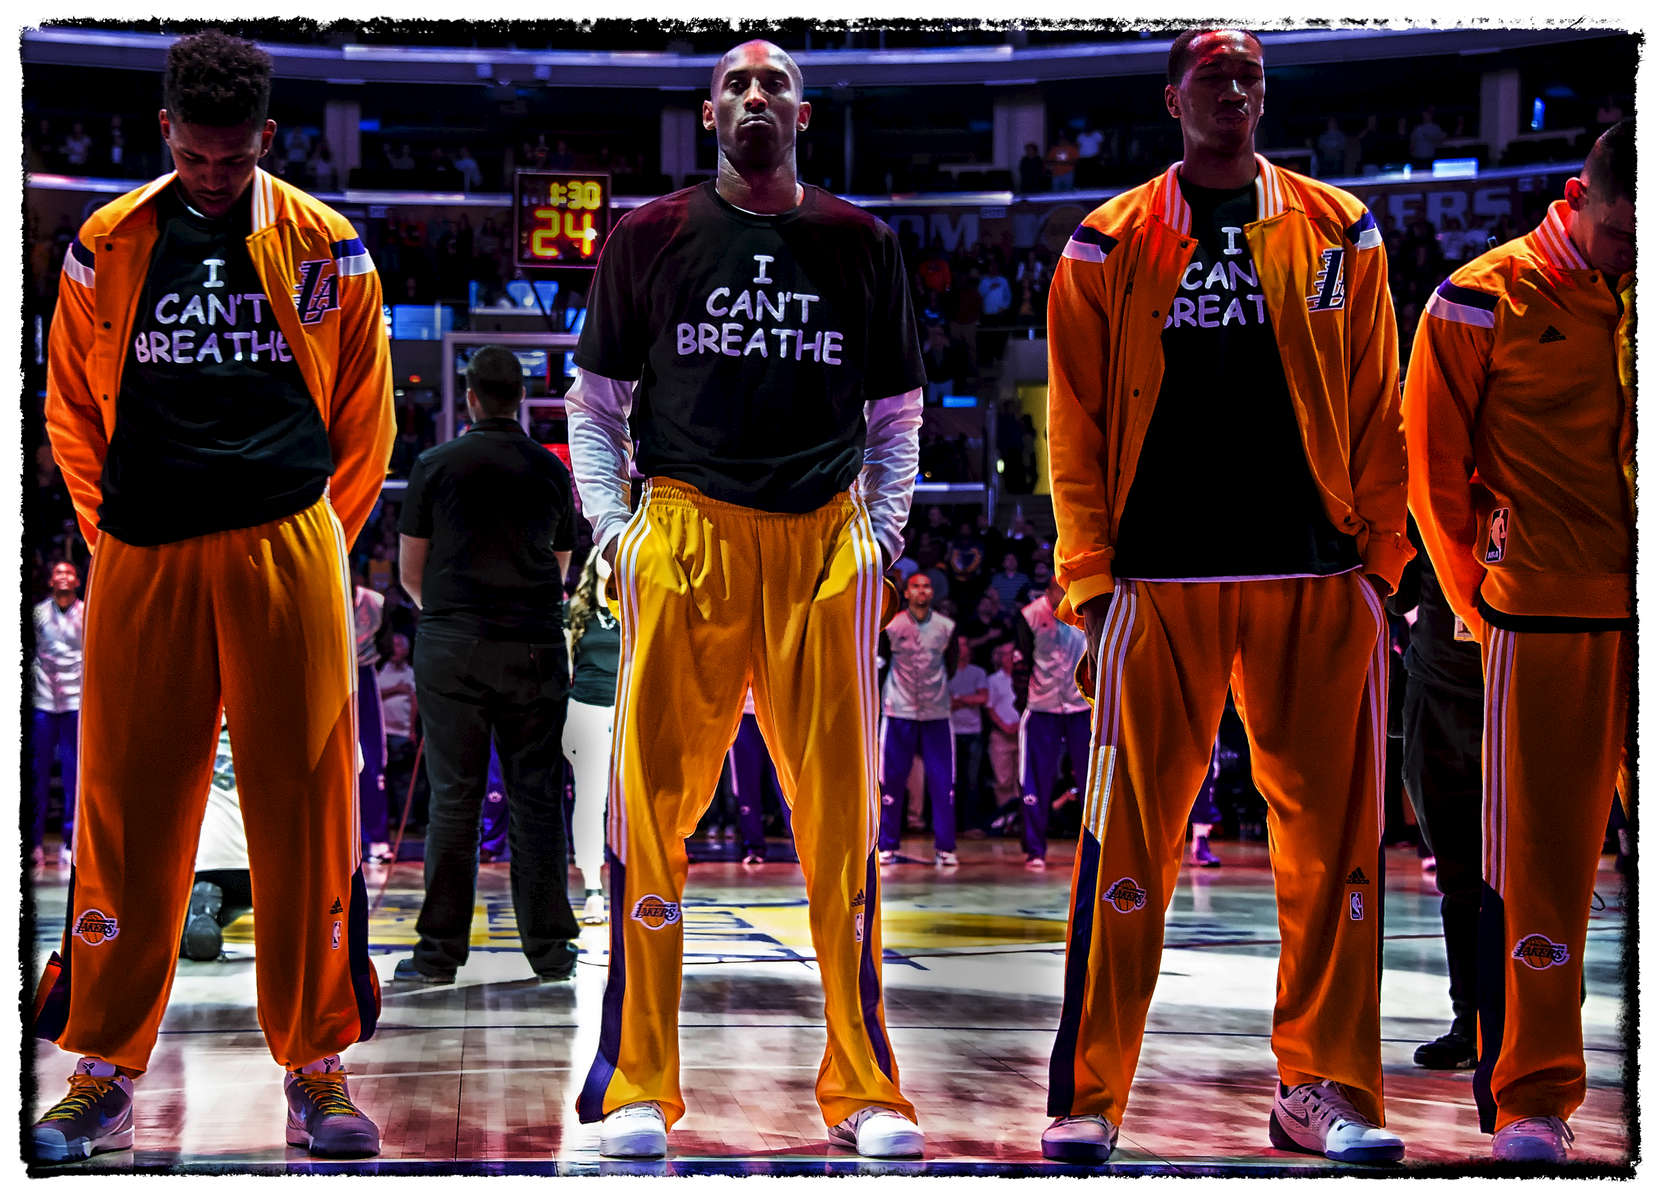 {quote}I Can't Breath{quote} - This image is a very powerful one to me. You see two other teammates {quote}pushing{quote} the NBA dresscode policey to make a statement. Kobe had no fear and boldly let the world see his stance. Before players took a knee, Kobe with help from Nike, used his platform for those who did not have one.